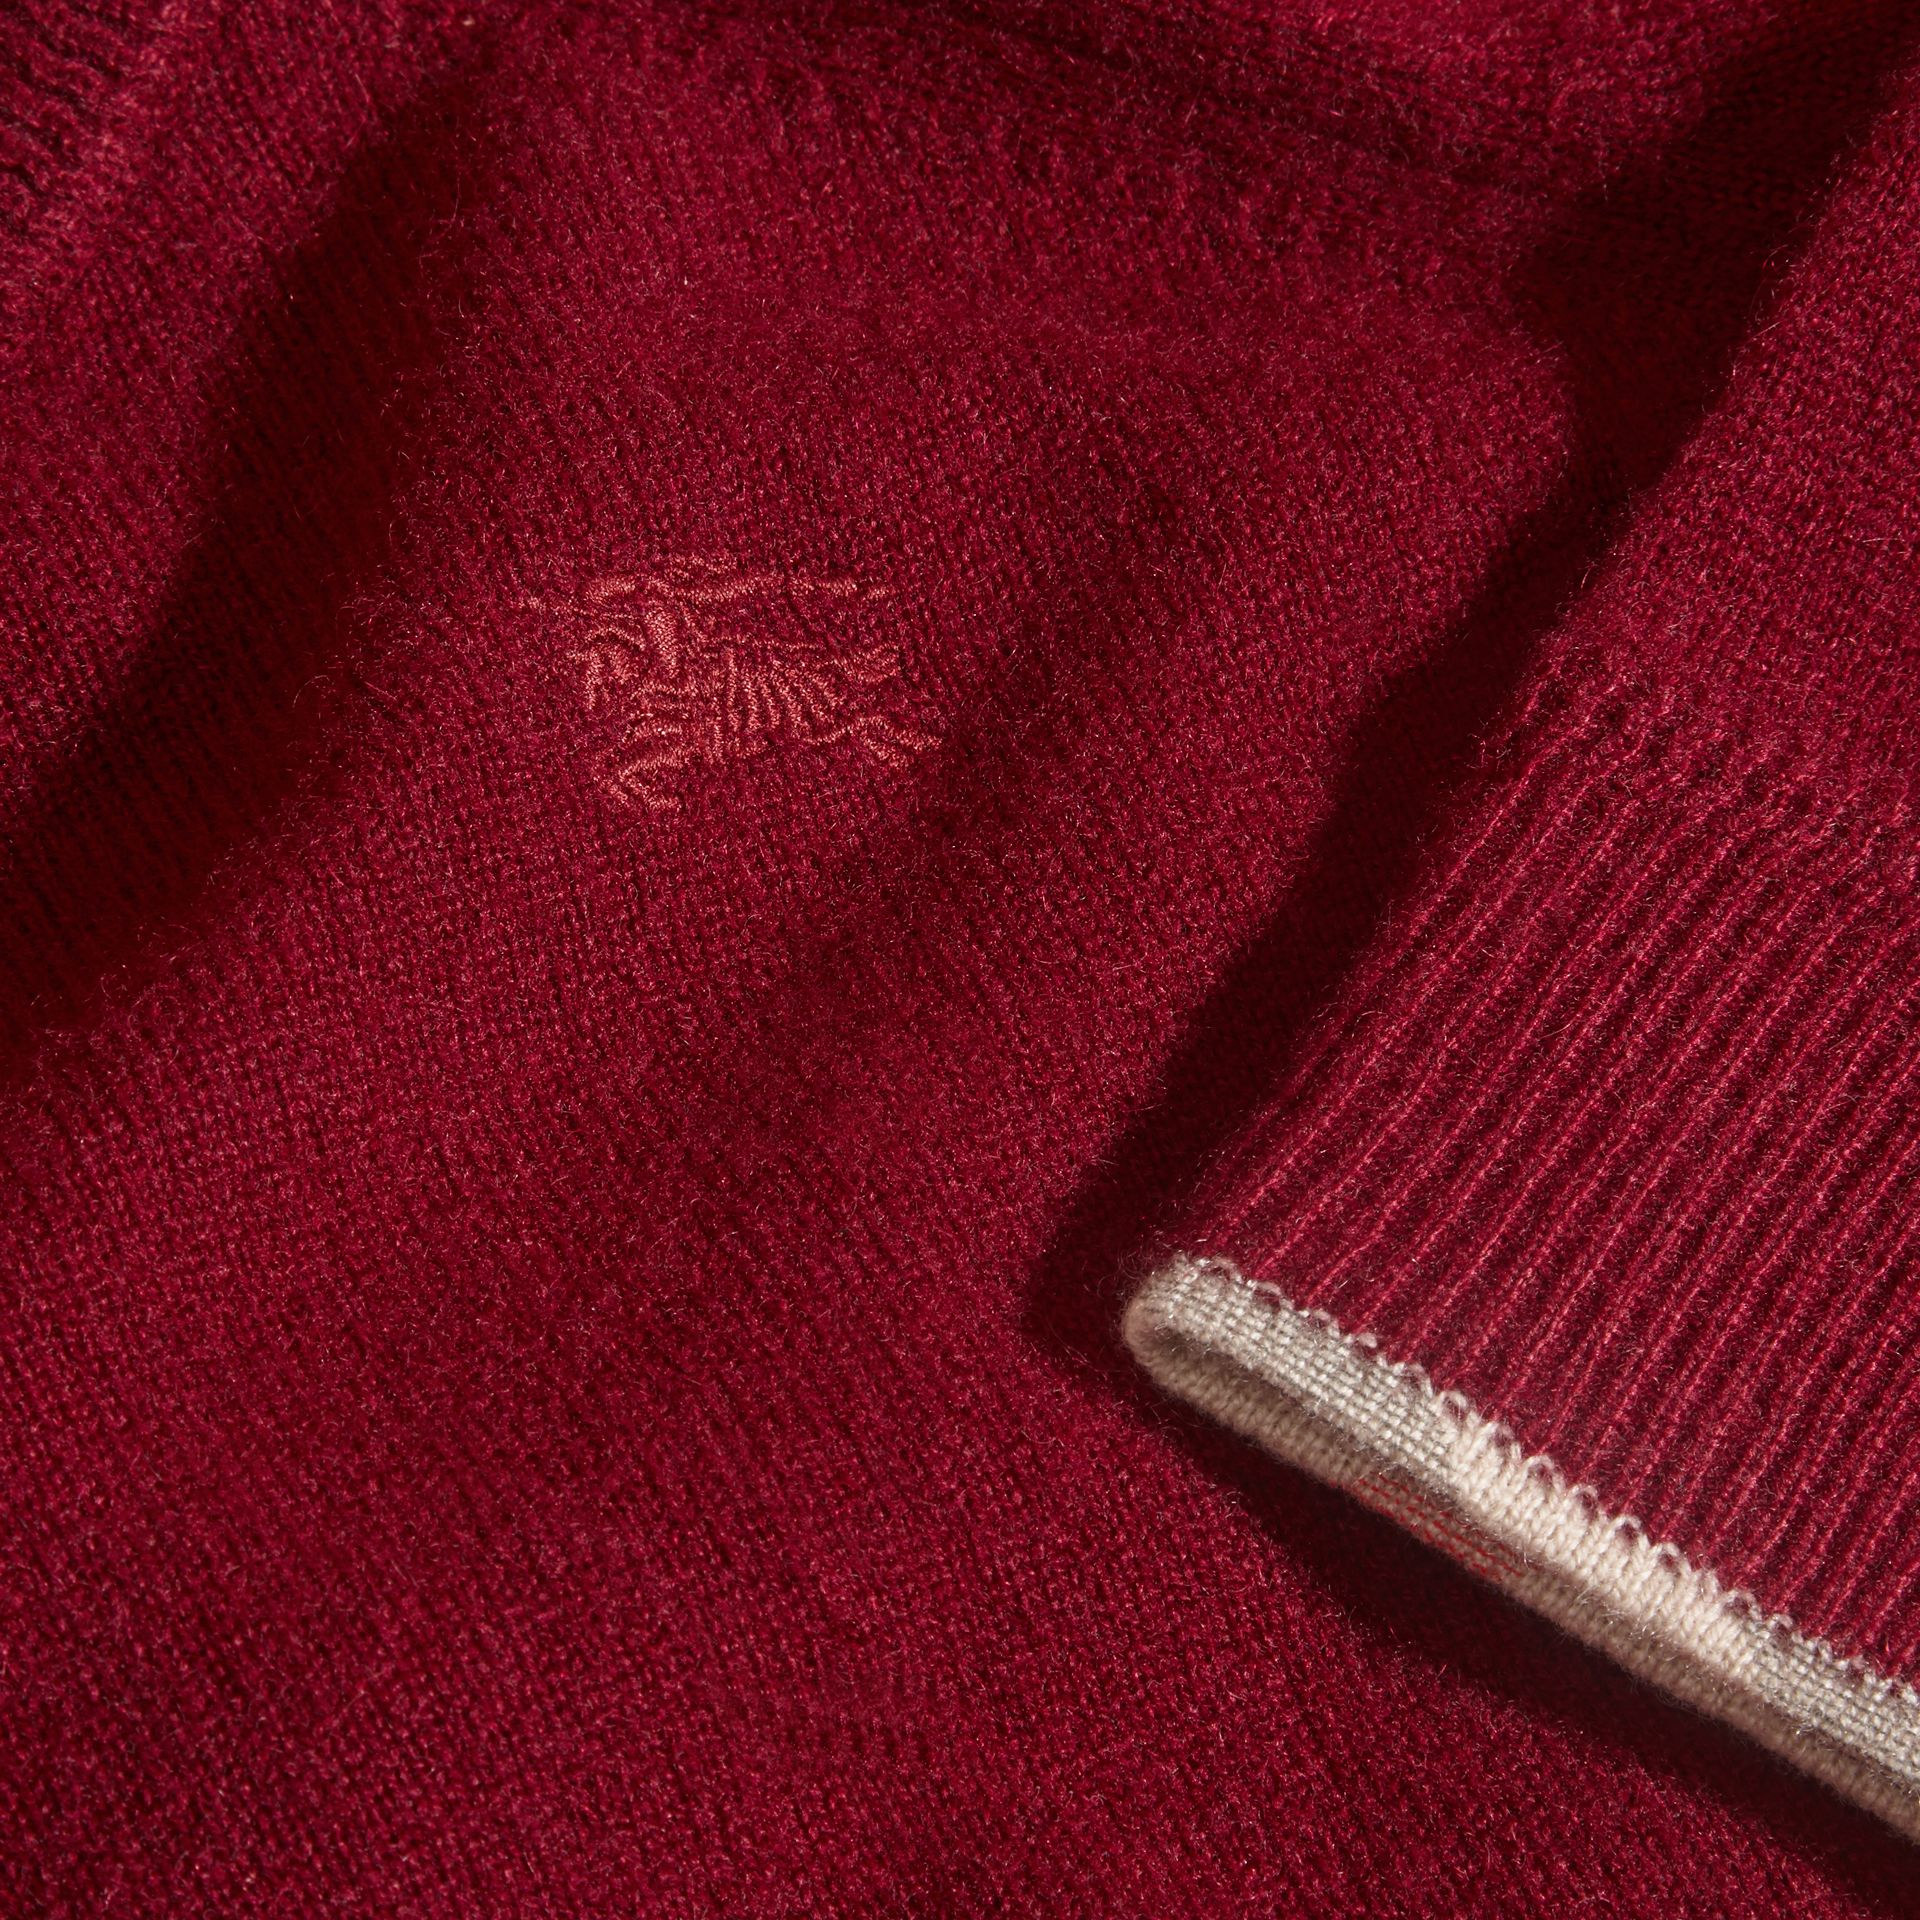 Mahogany red Check Cuff Cashmere Sweater Mahogany Red - gallery image 2